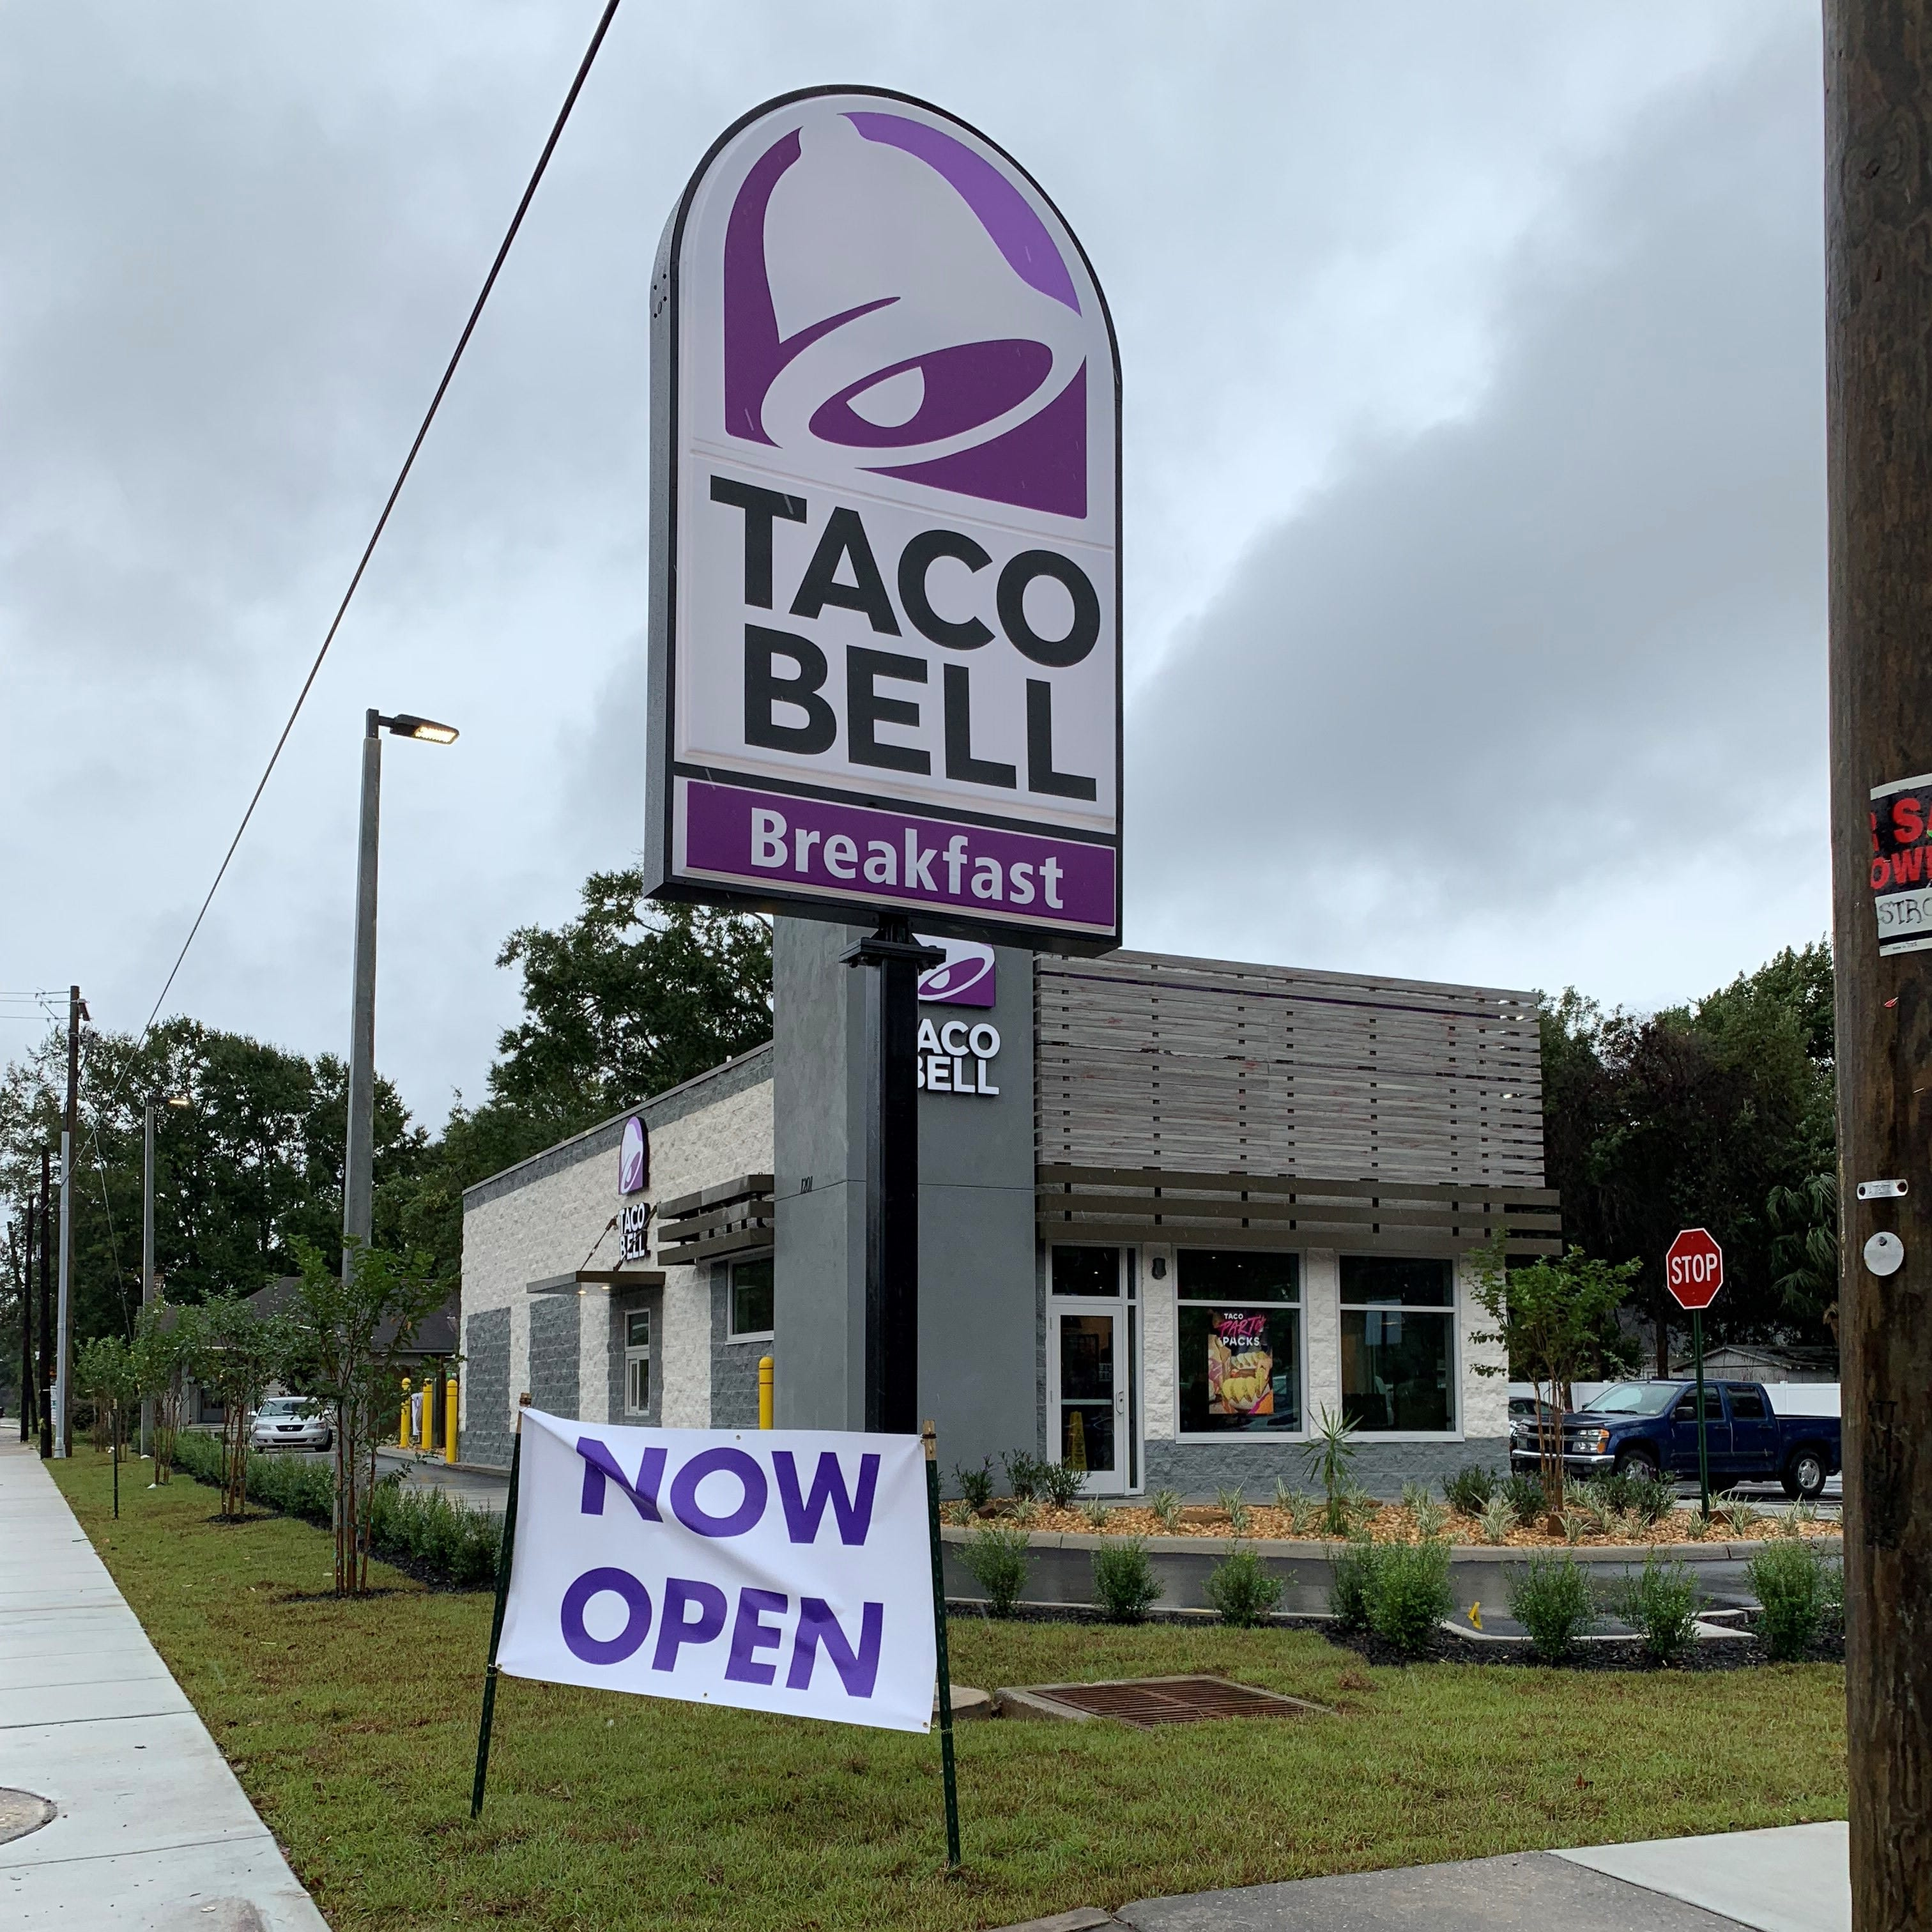 East Hill's Taco Bell opens after compromises with residents on design